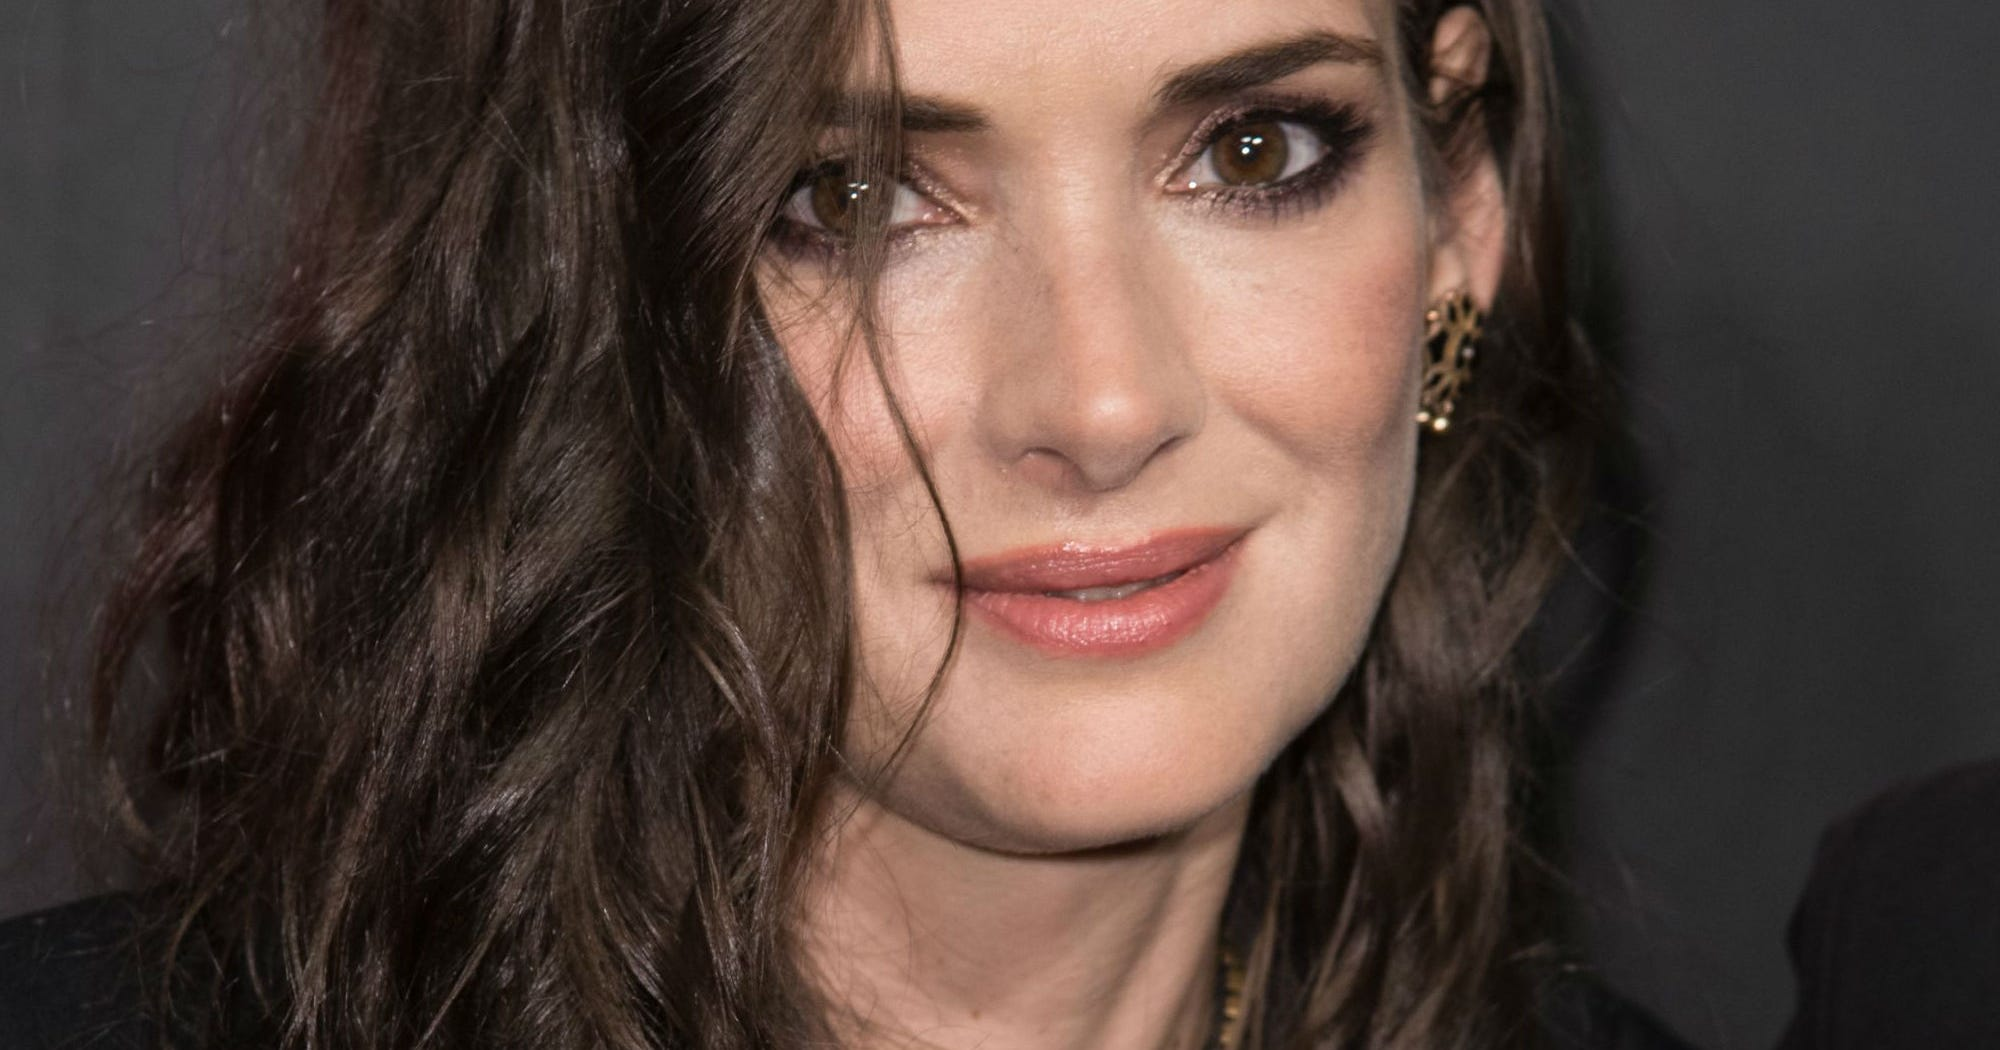 winona sex personals Check out winona ryder nude plus all your favorite celebs here at mr skin, home of the hottest naked celebrity pics and sex scenes.